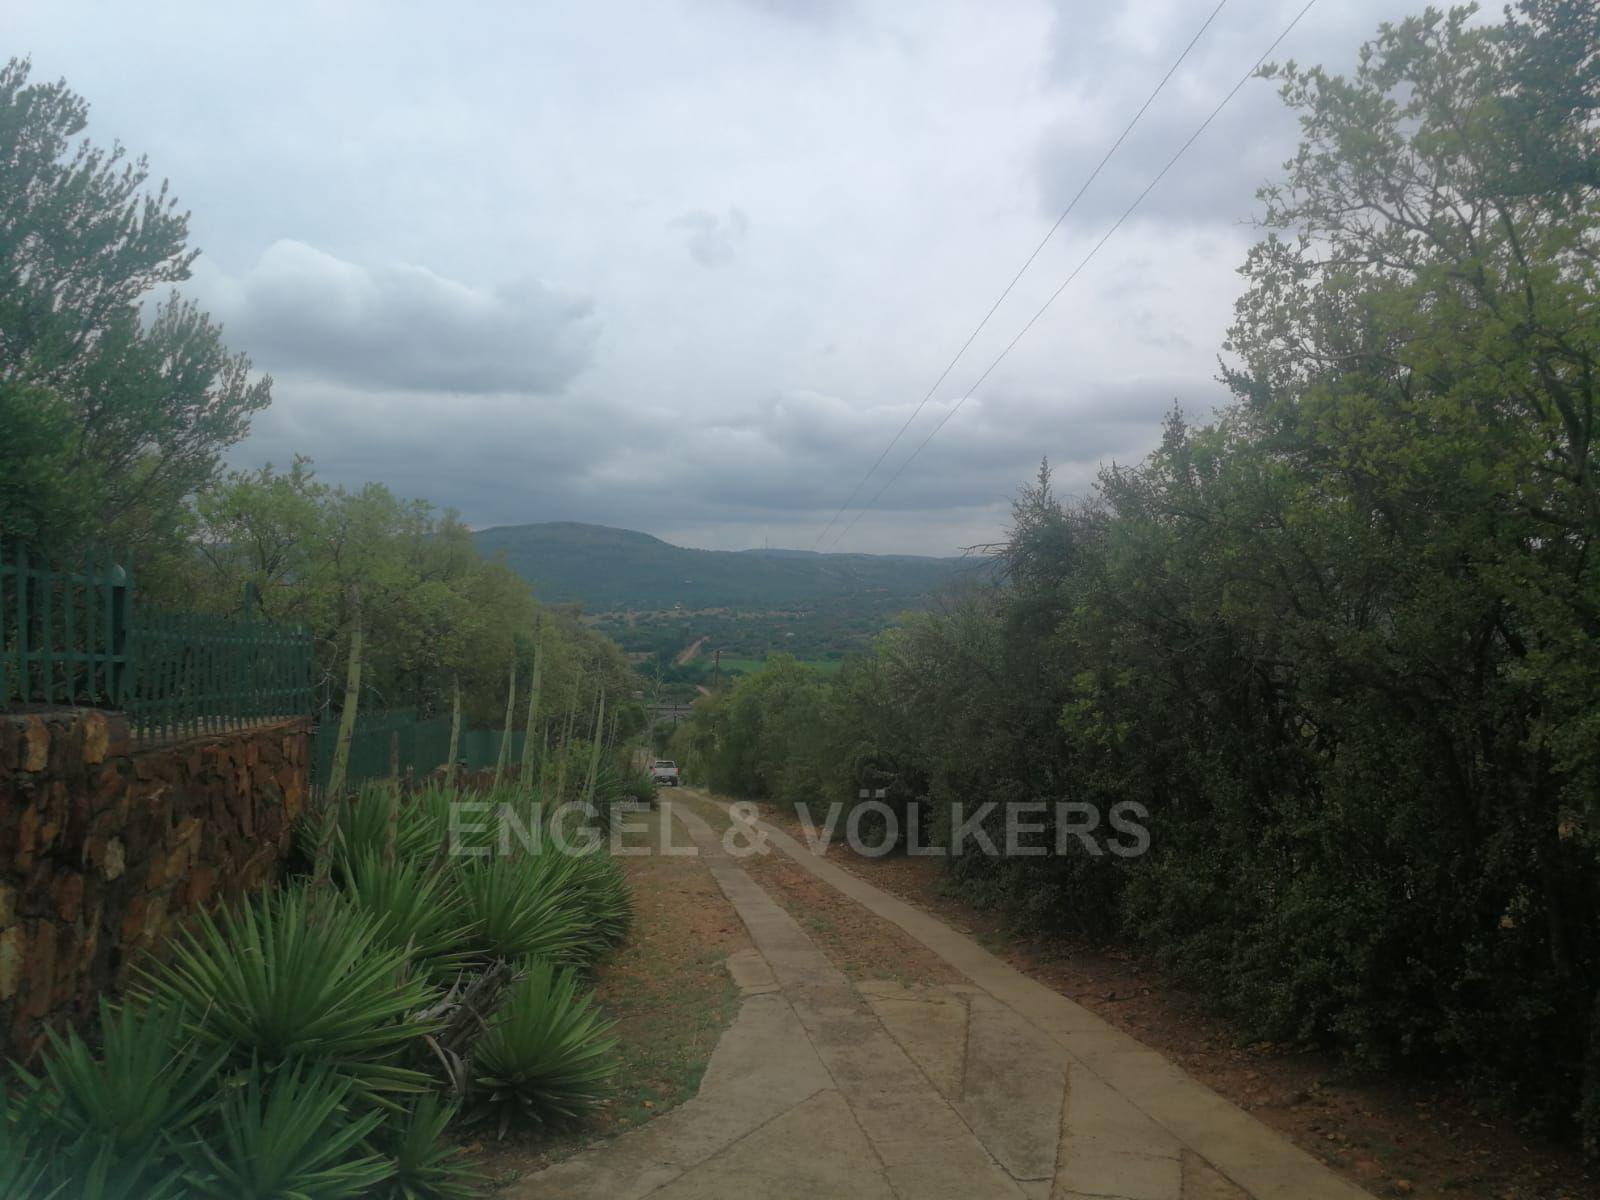 Land in Hartbeespoort Dam Area - Secure estate near main artery roads